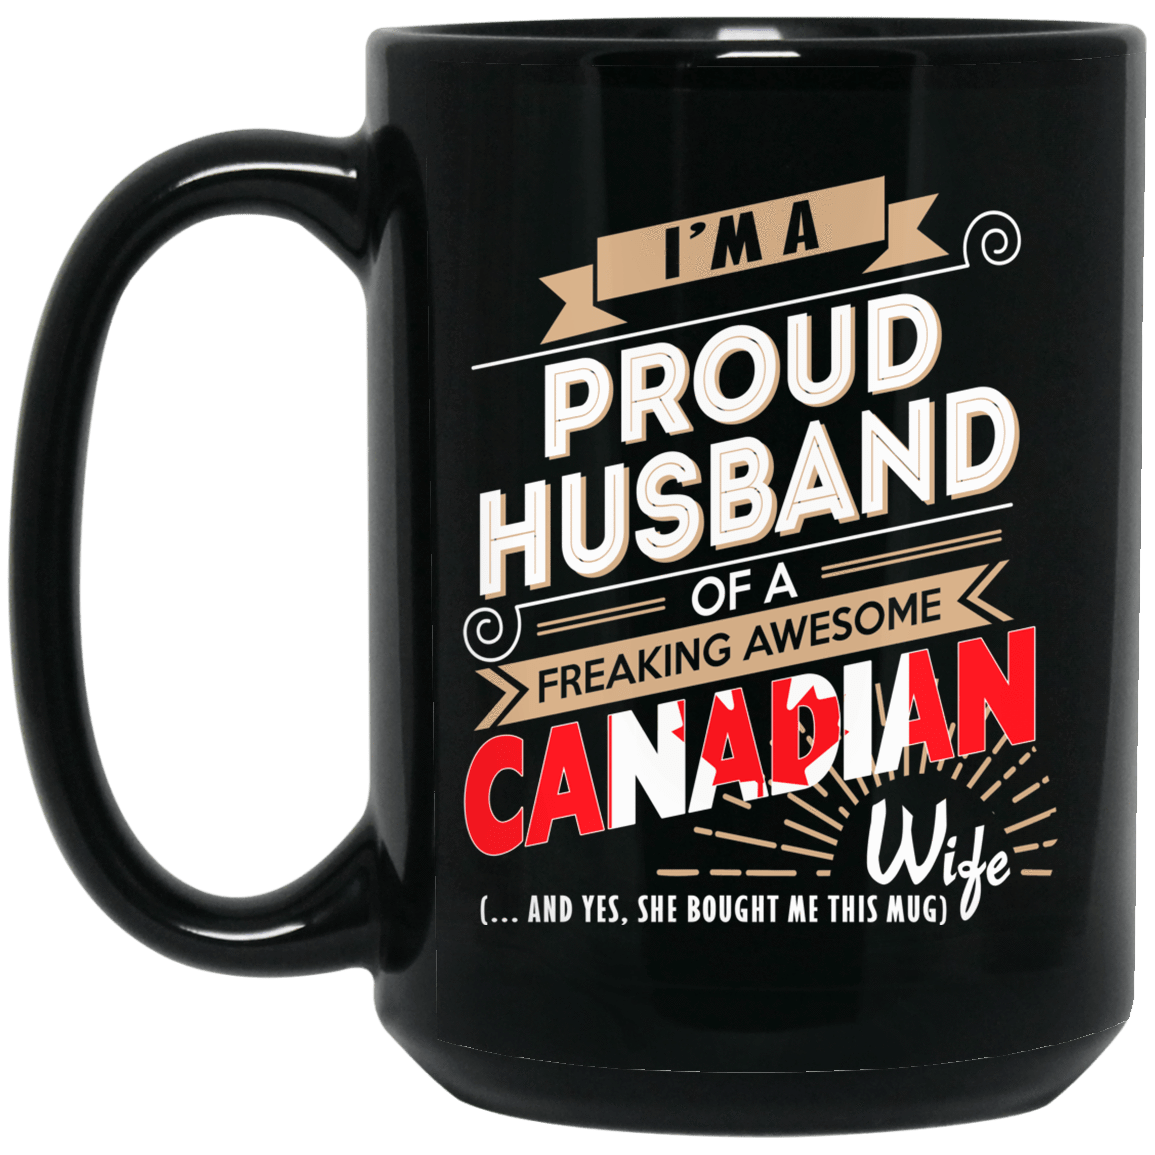 Proud Husband Of A Freaking Awesome Canadian Wife Mug 1066-10182-72136602-49311 - Tee Ript